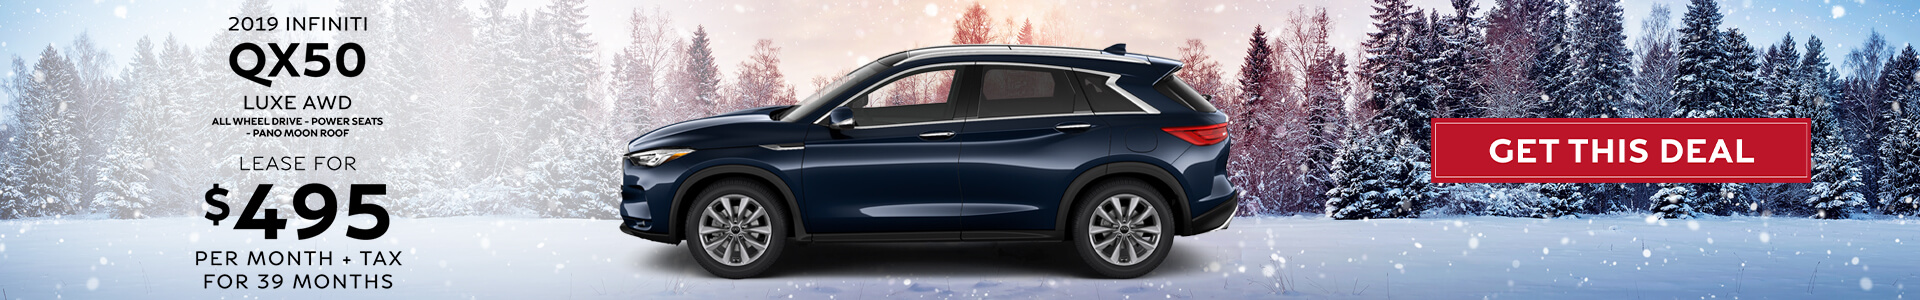 QX50 LUXE - Lease for 495